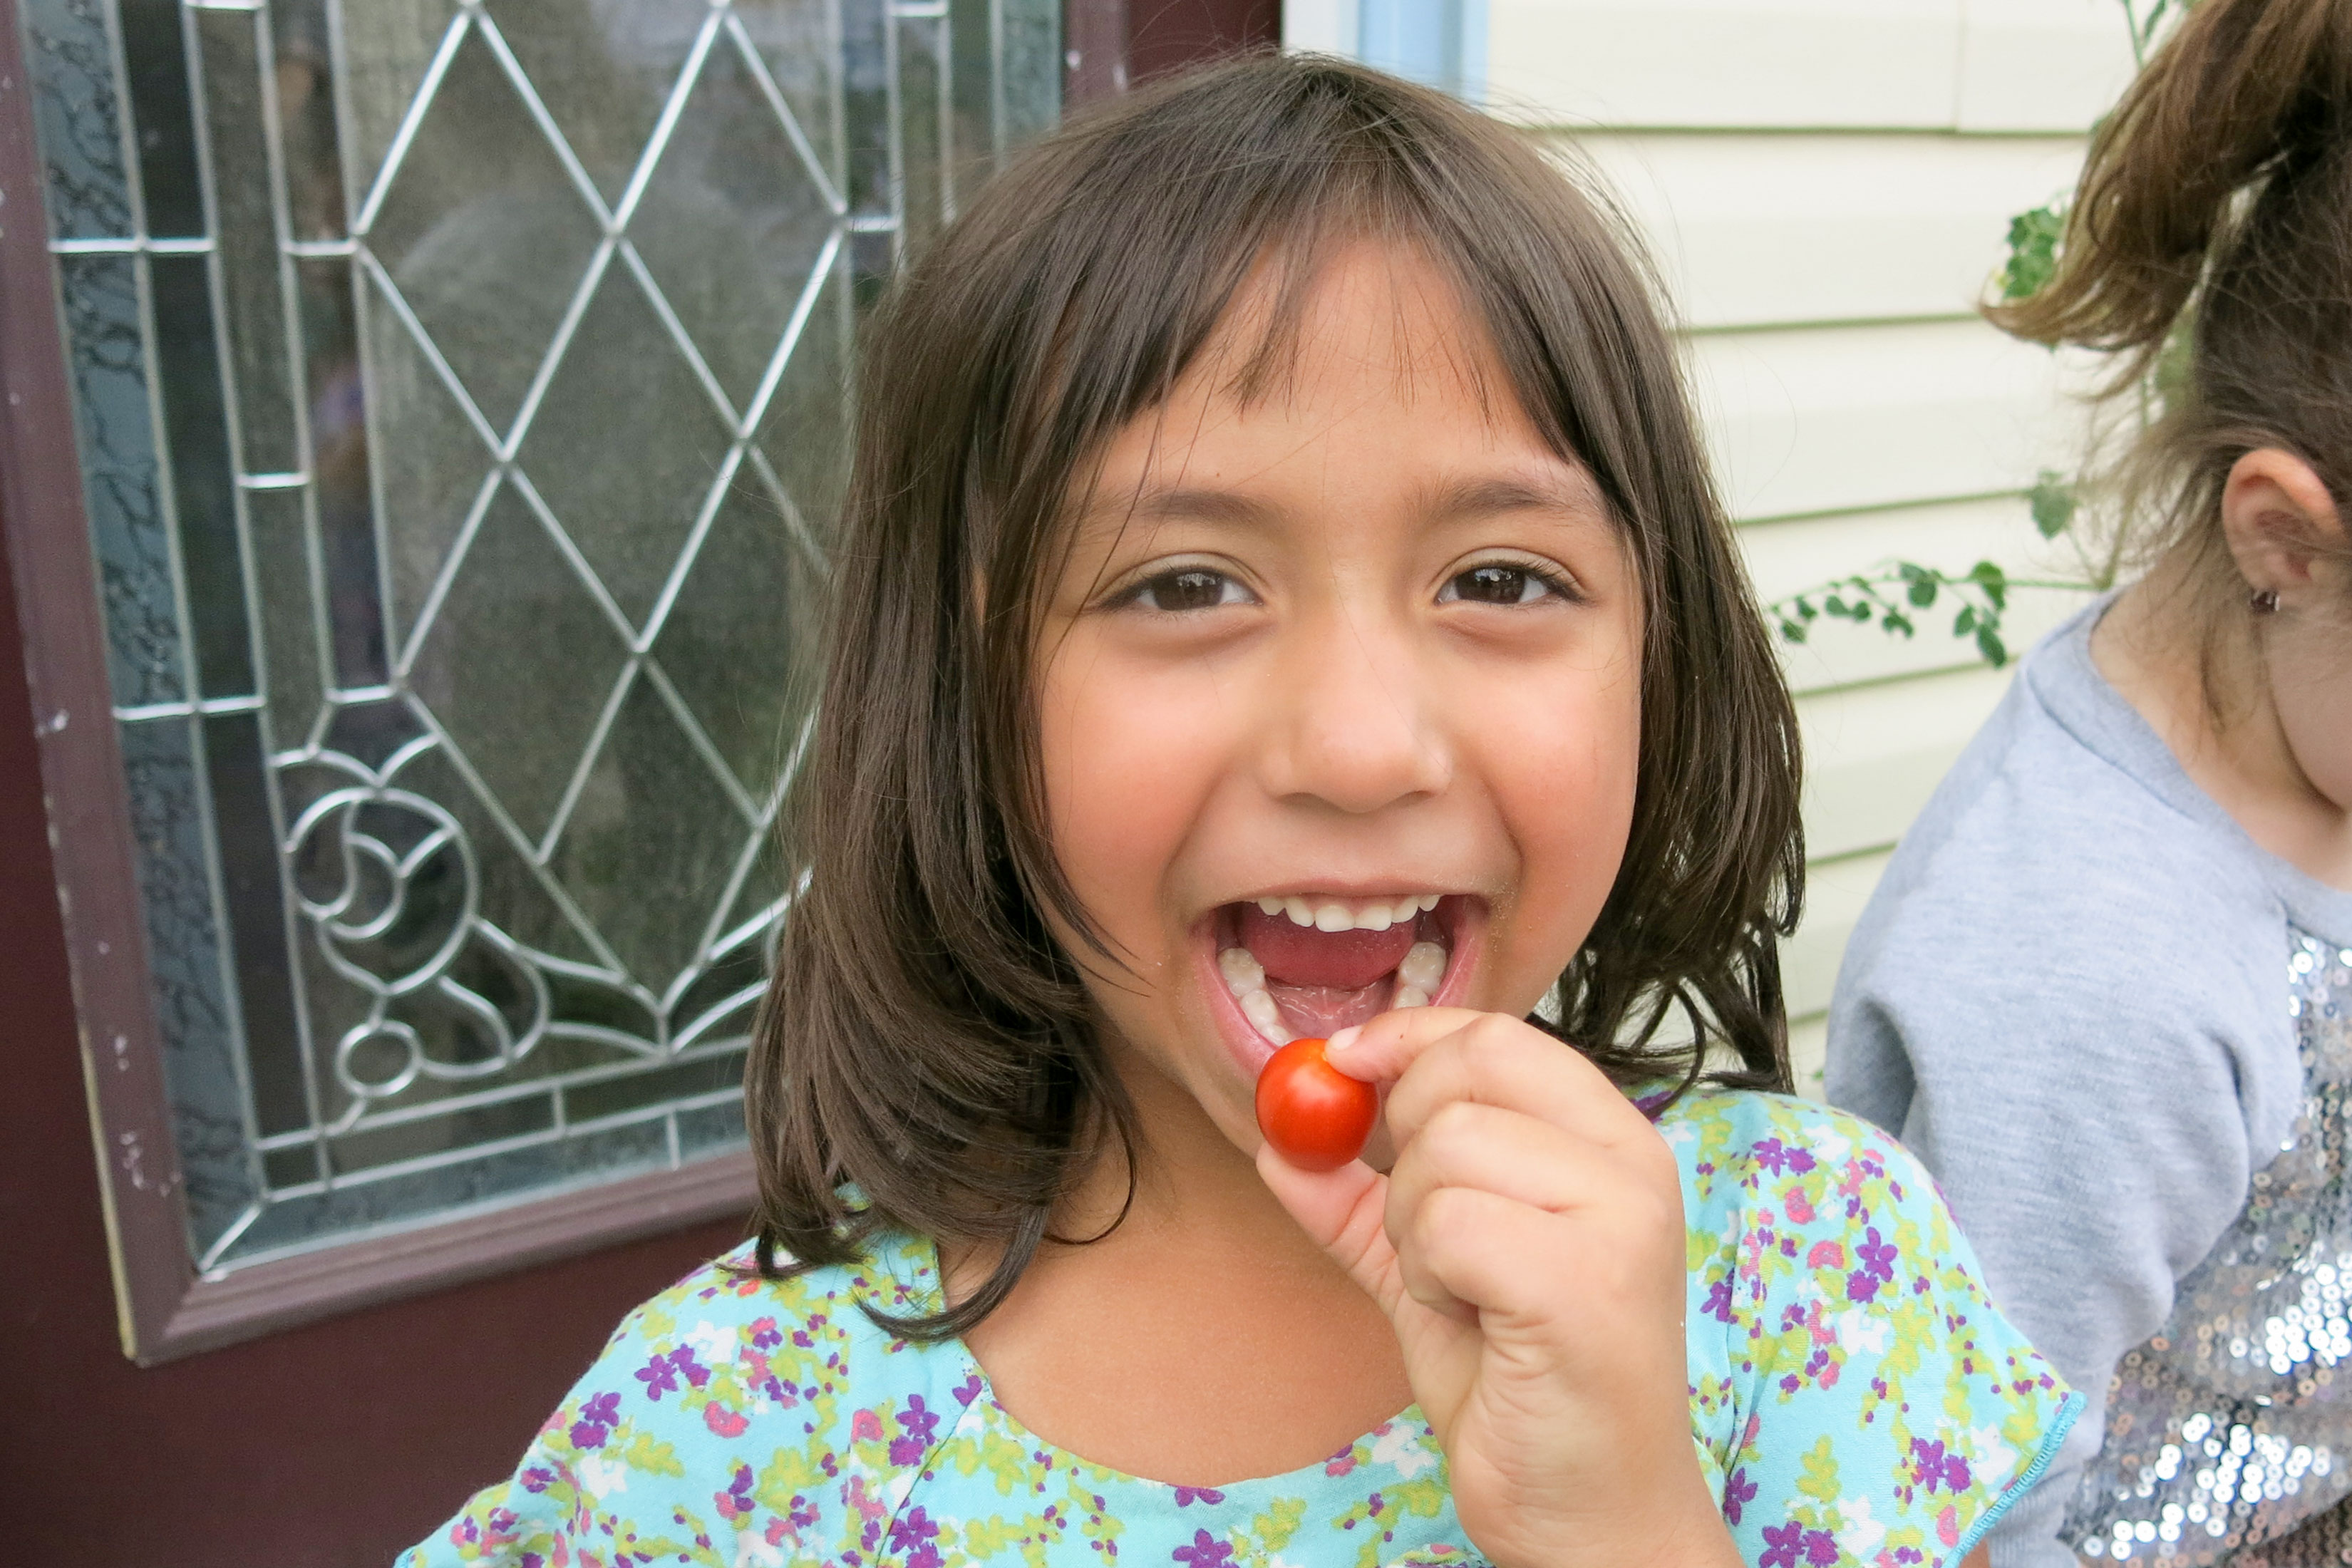 Photo: Kids CROP Nutrition 4 | Child With Veggies - JDaley